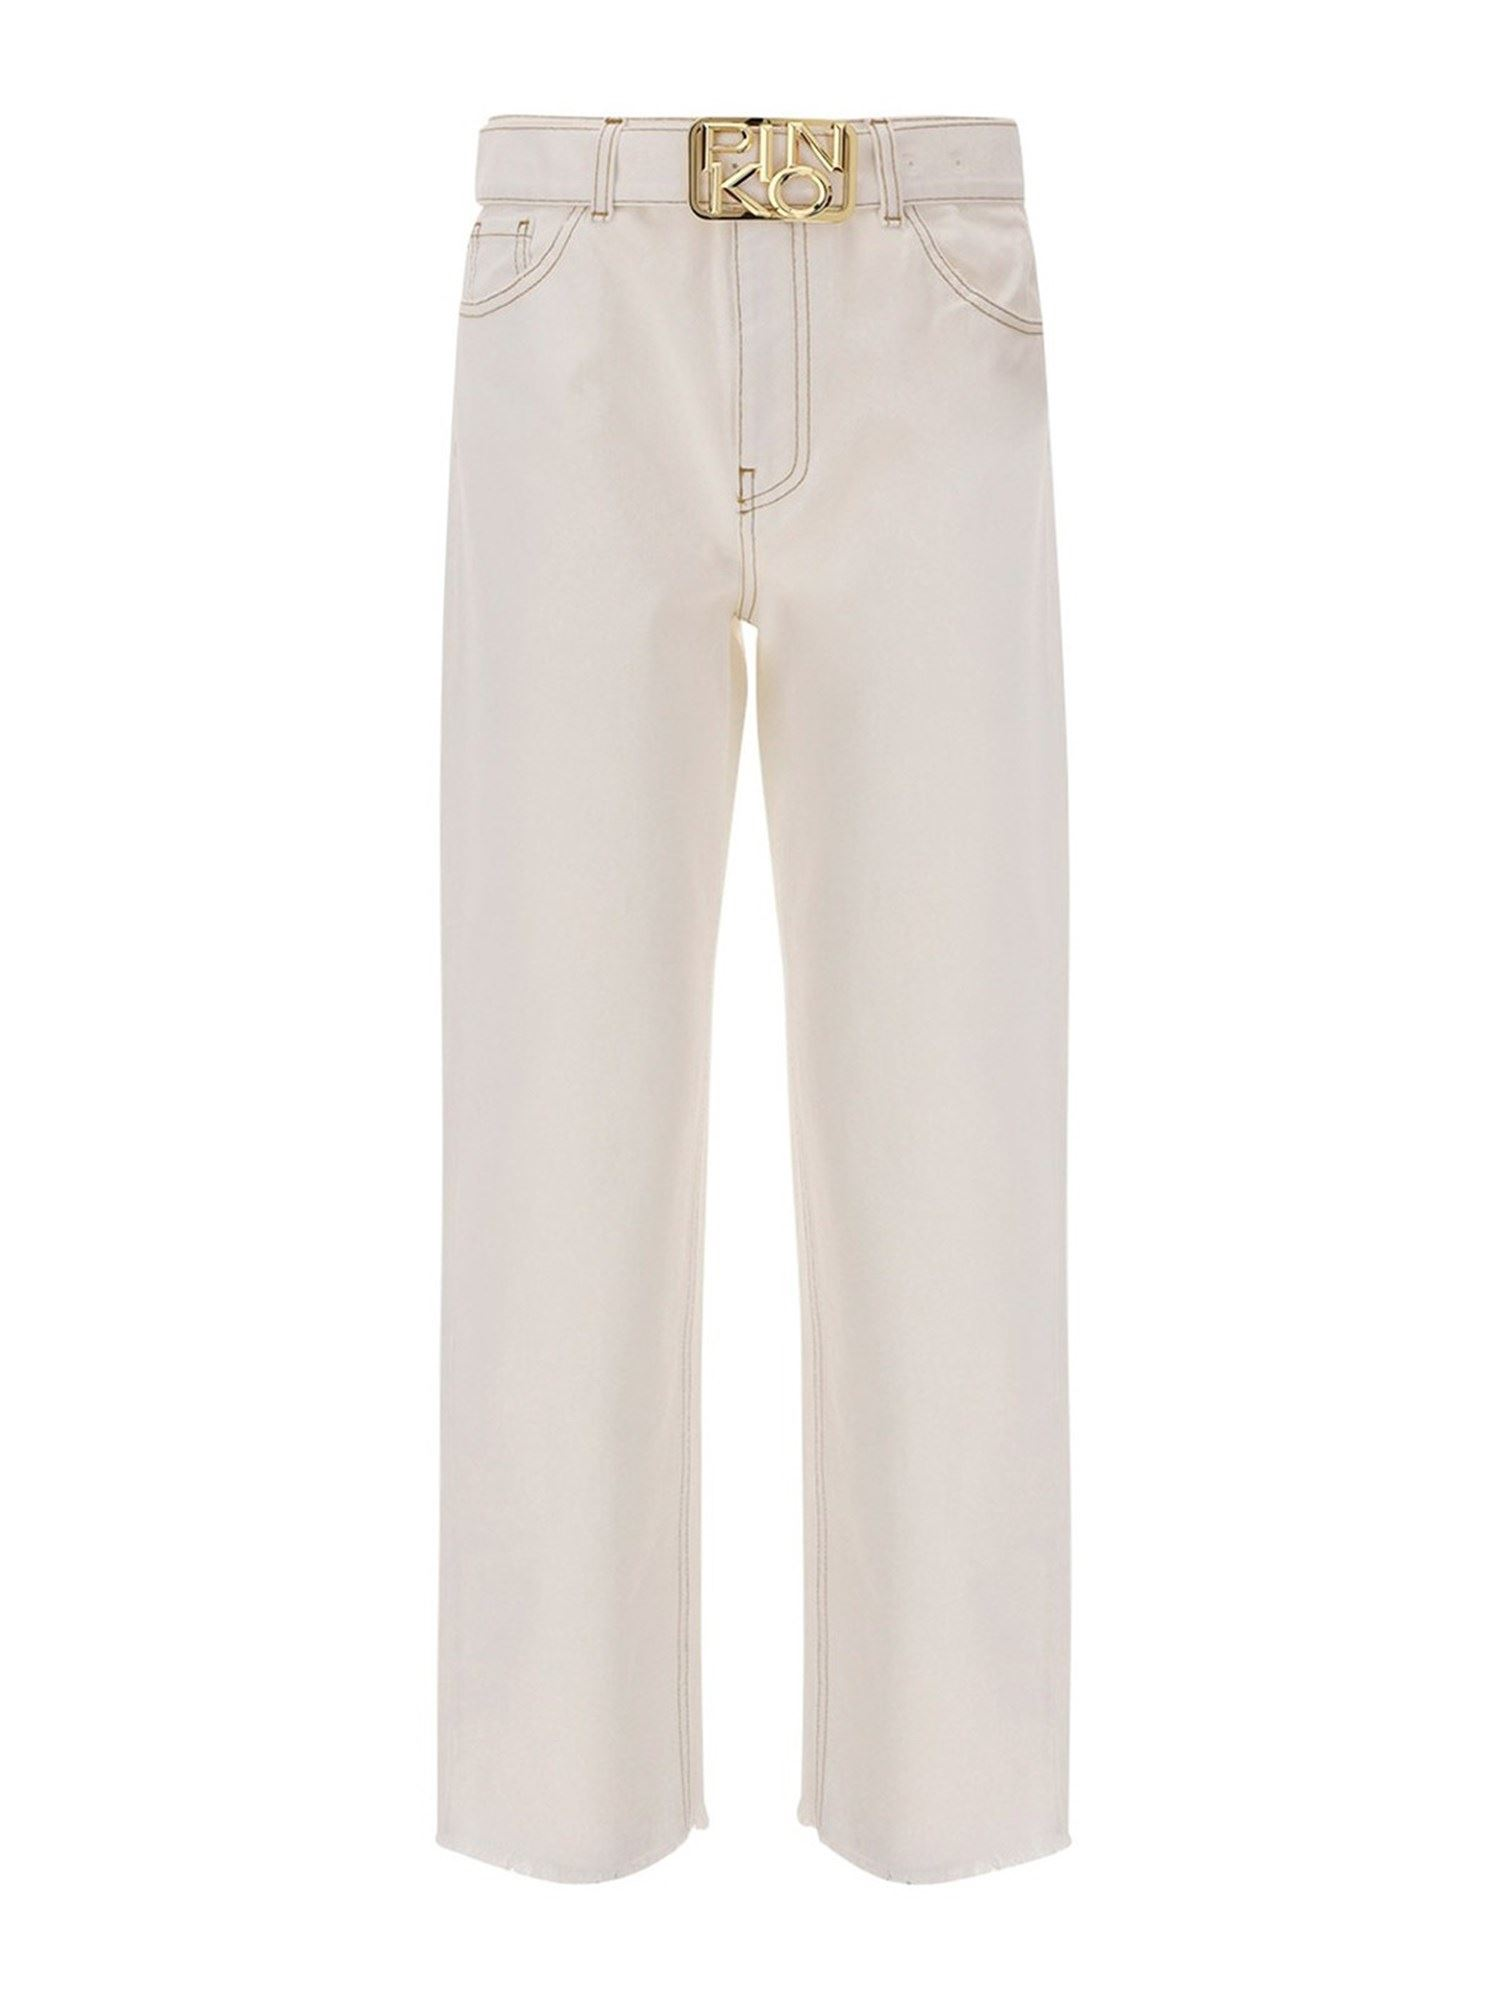 PINKO PINKO DENIM JEANS IN WHITE